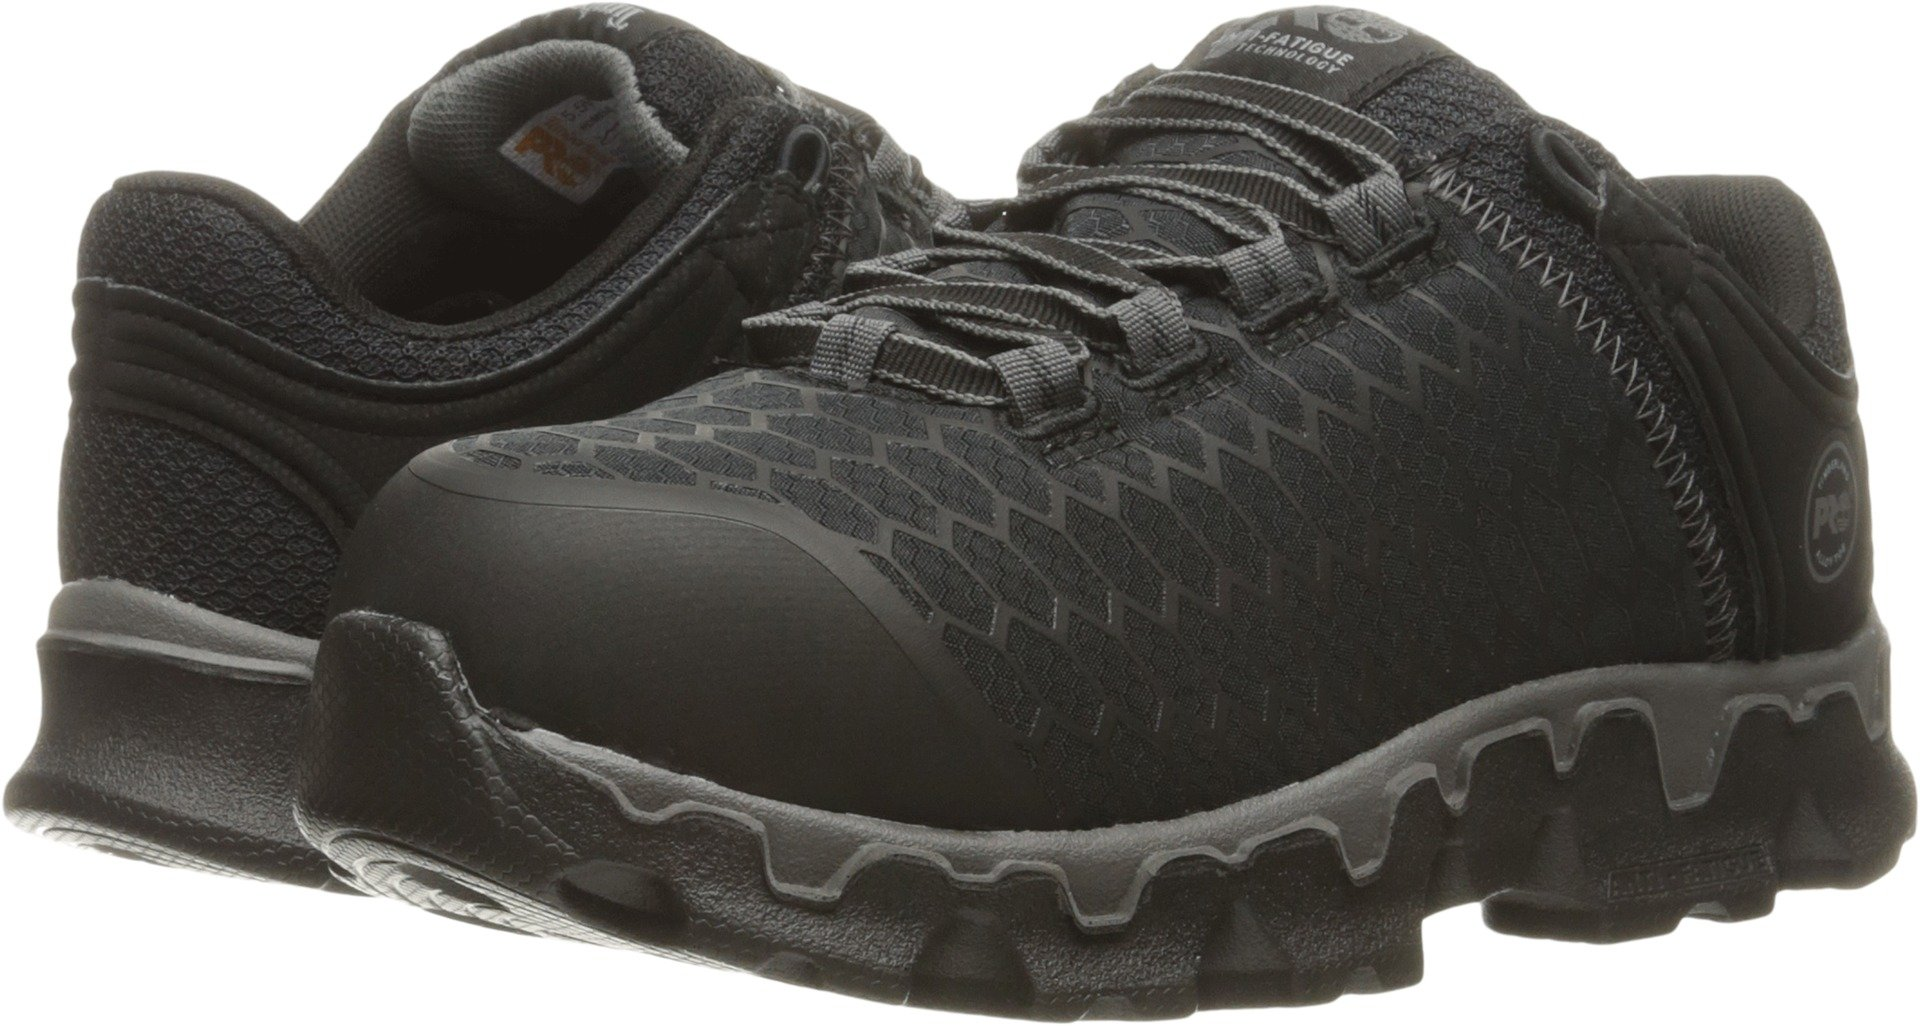 Timberland PRO Women's Powertrain Sport Alloy Toe SD+ Industrial and Construction Shoe, Black Synthetic, 8 W US